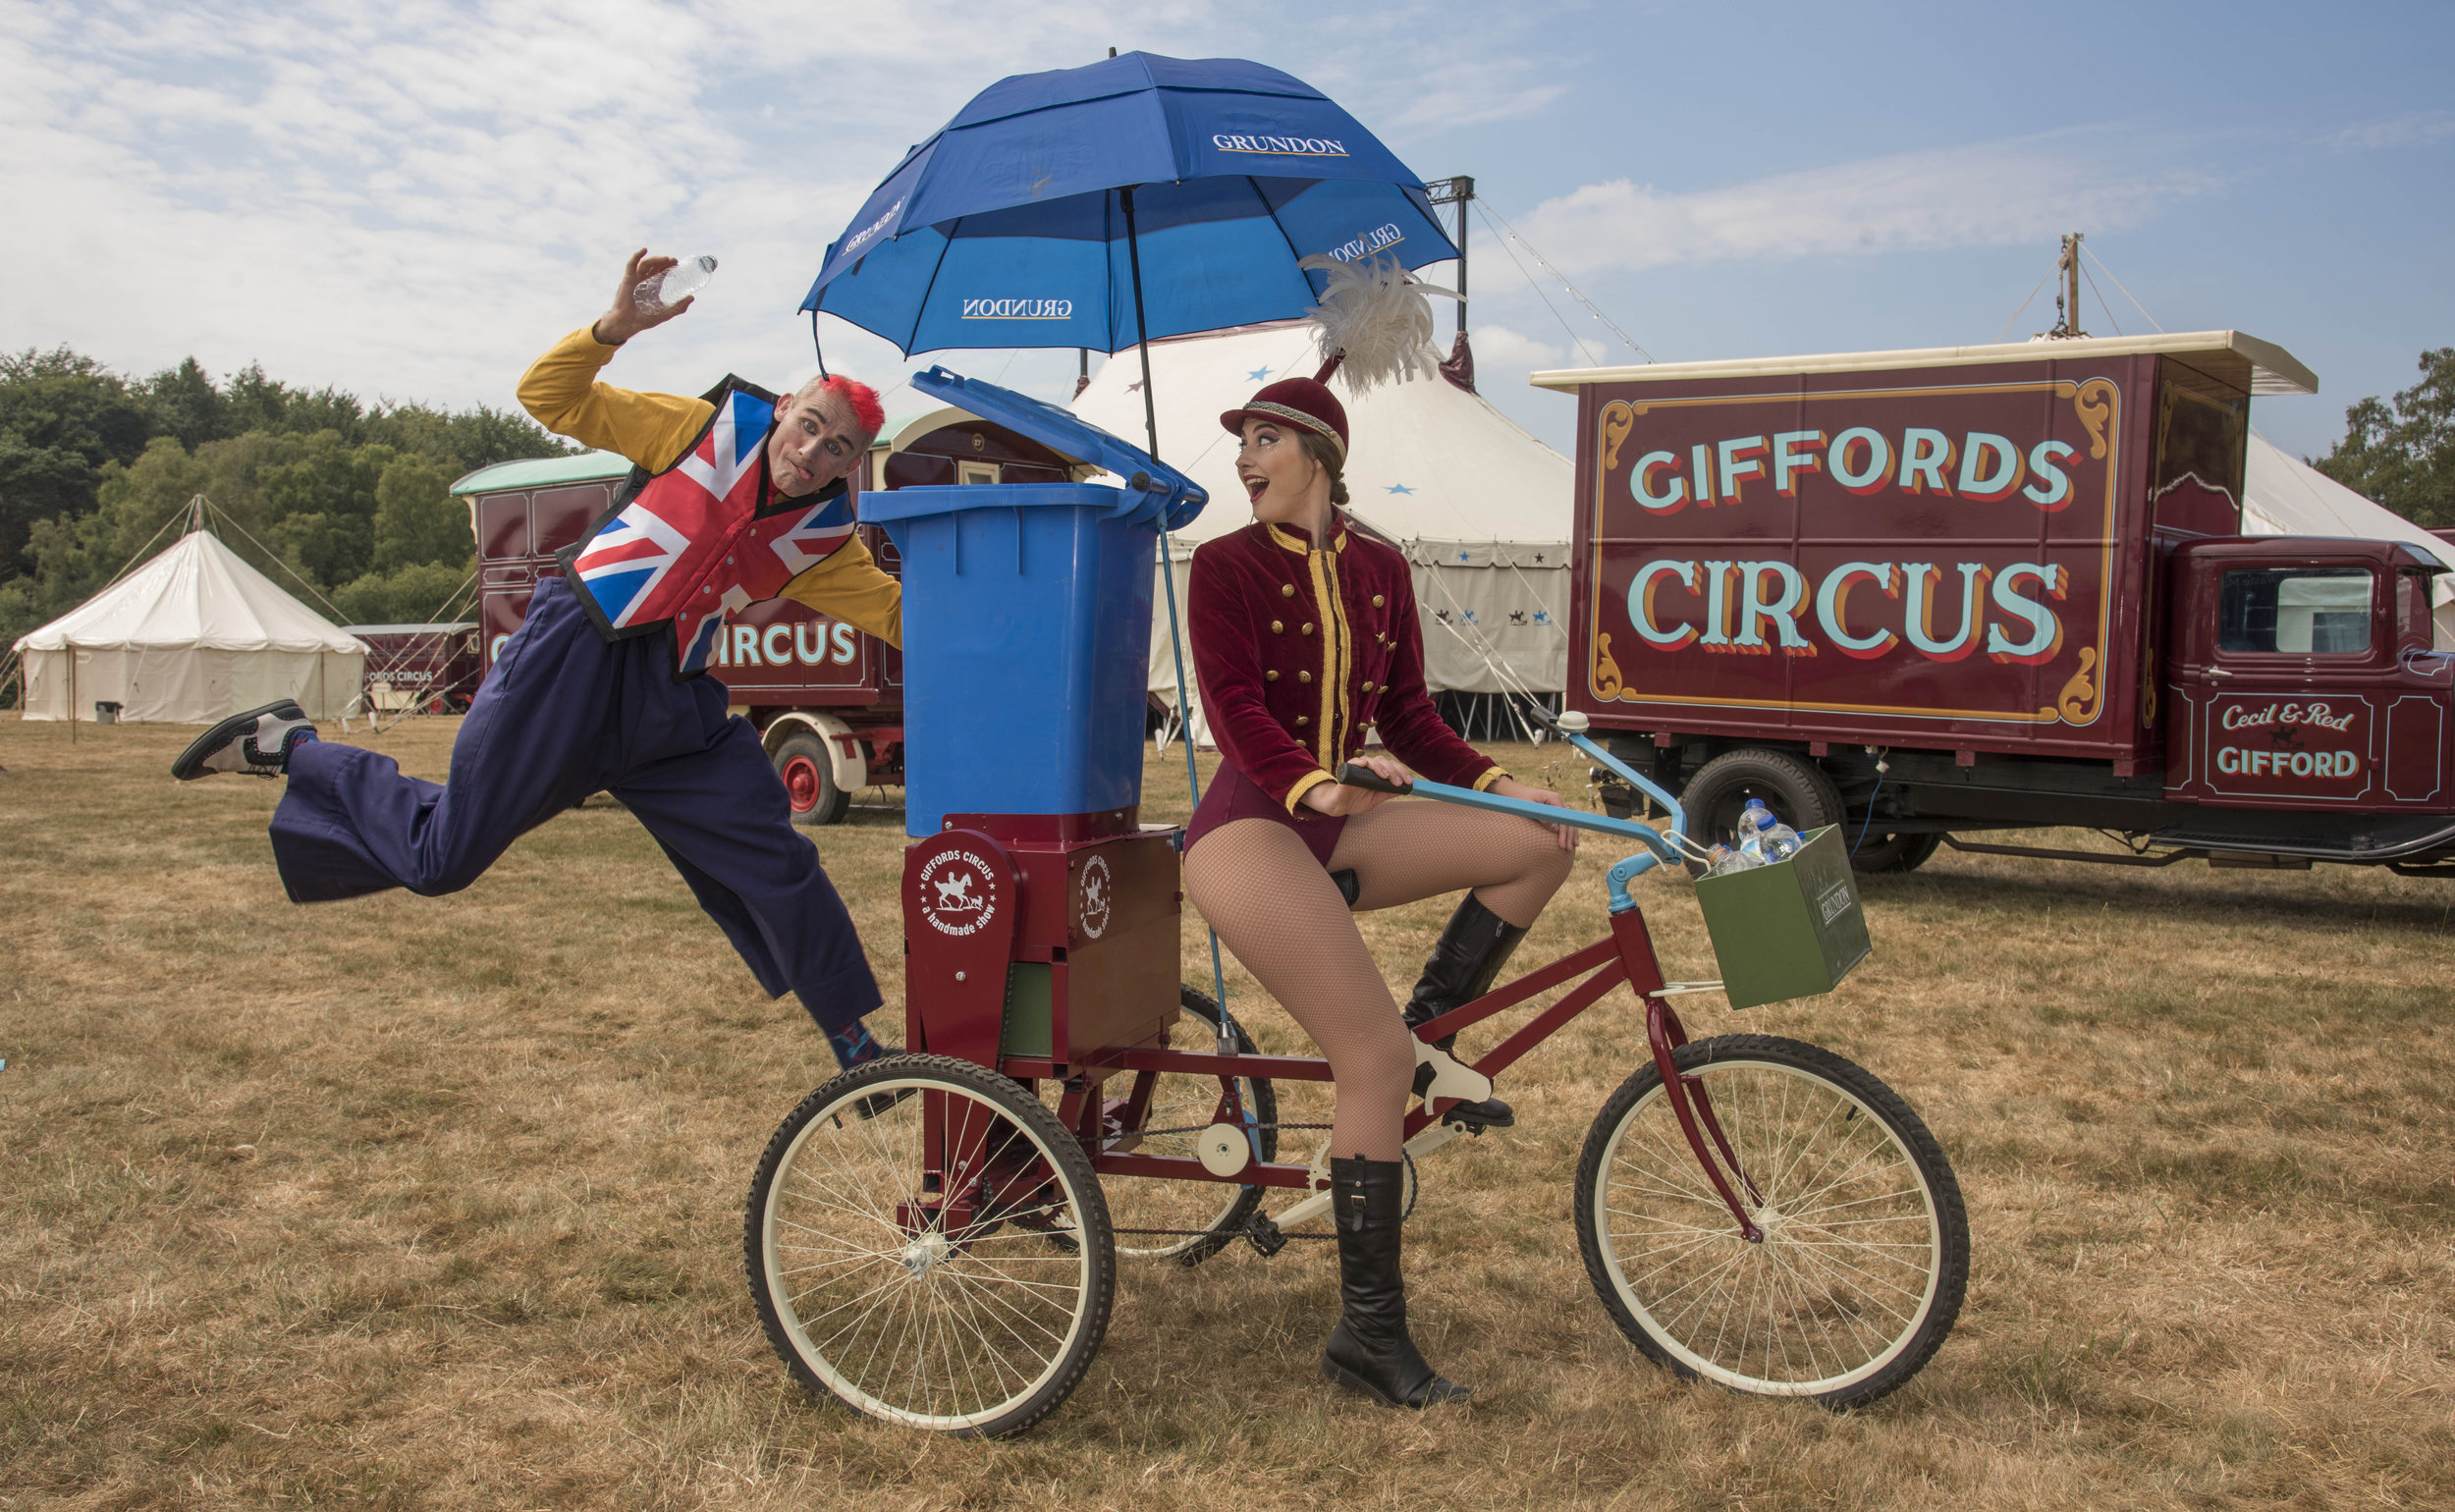 Tweedy the clown and showgirl Lizzie on the Recycle Bicycle